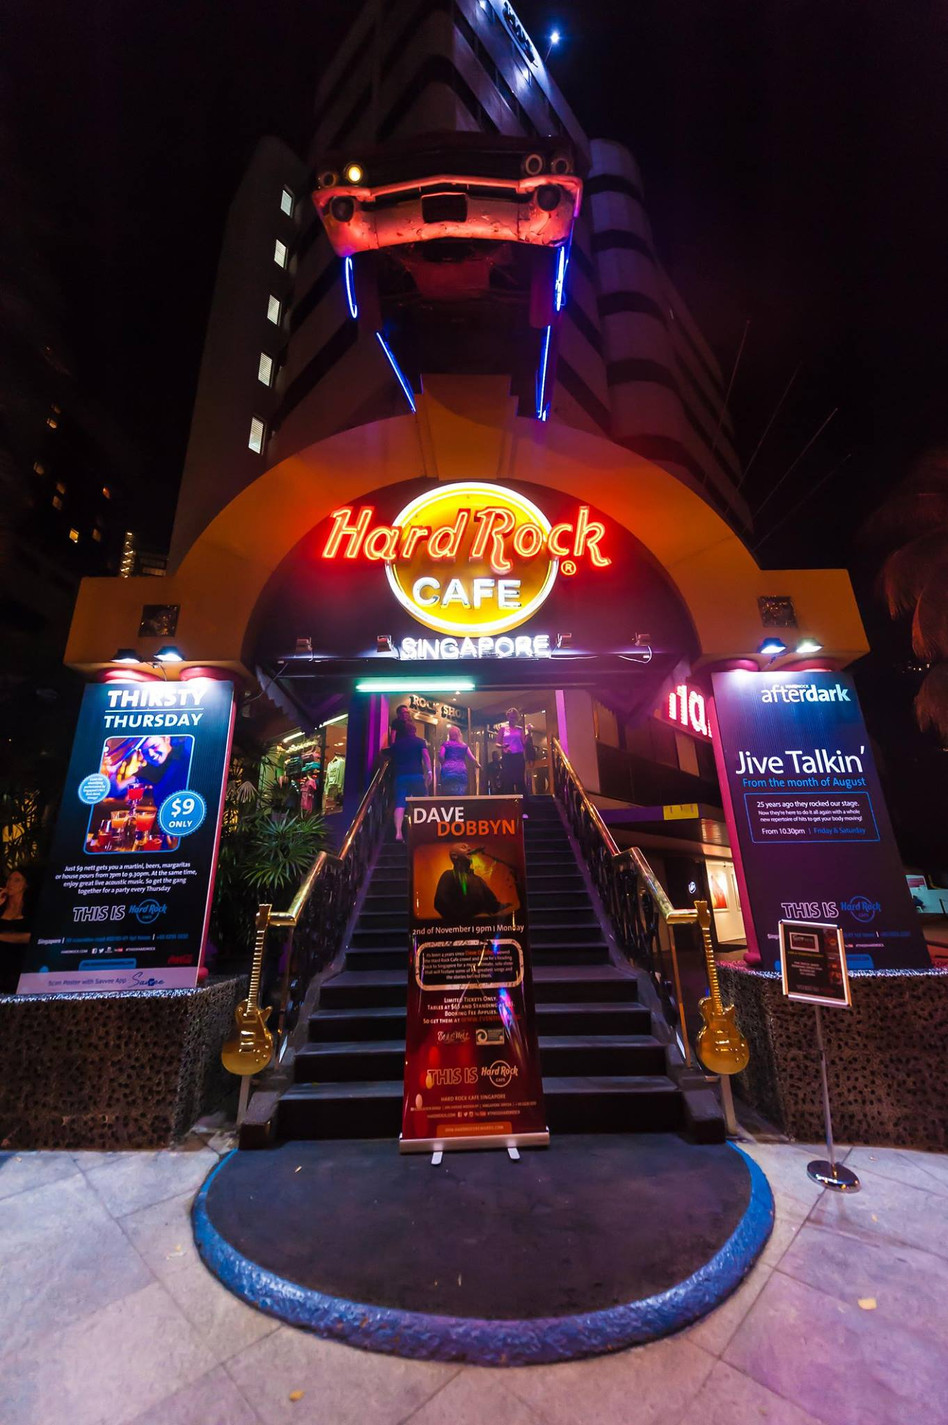 Hard Rock Cafe celebrates their 25th Anniversary with a Kickass Free Party